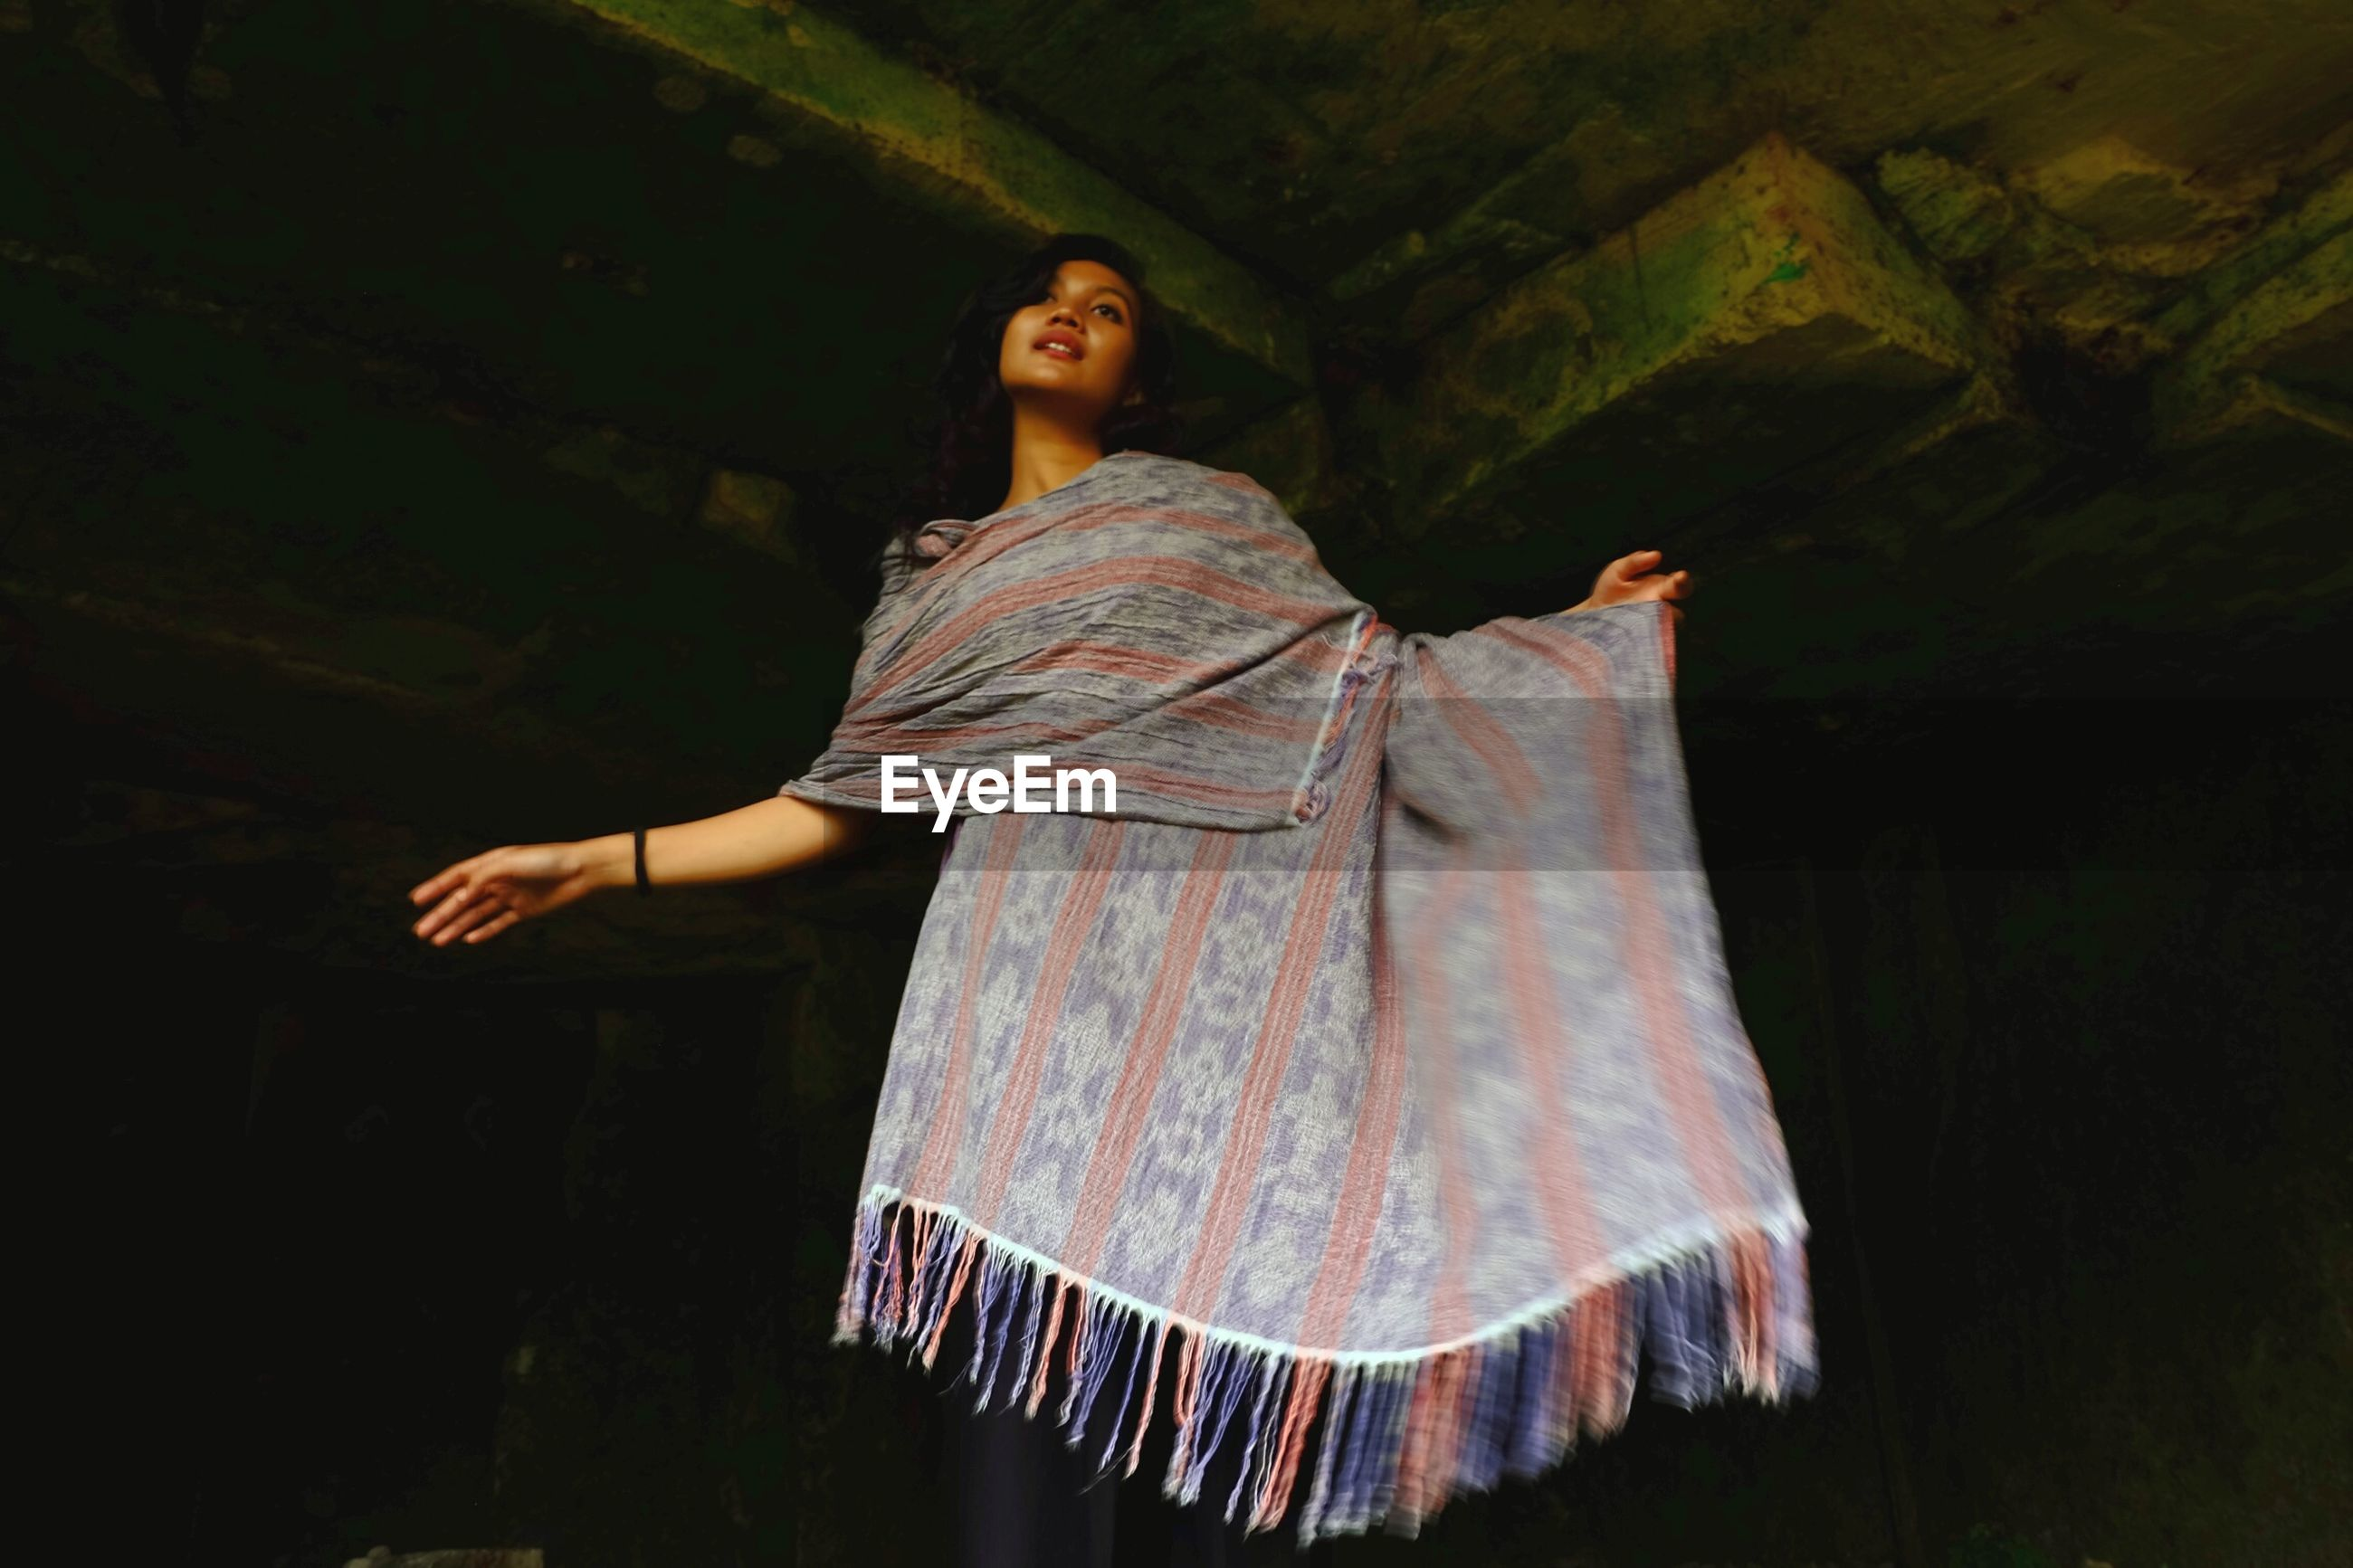 Low angle view of woman wrapped in dupatta while standing in darkroom